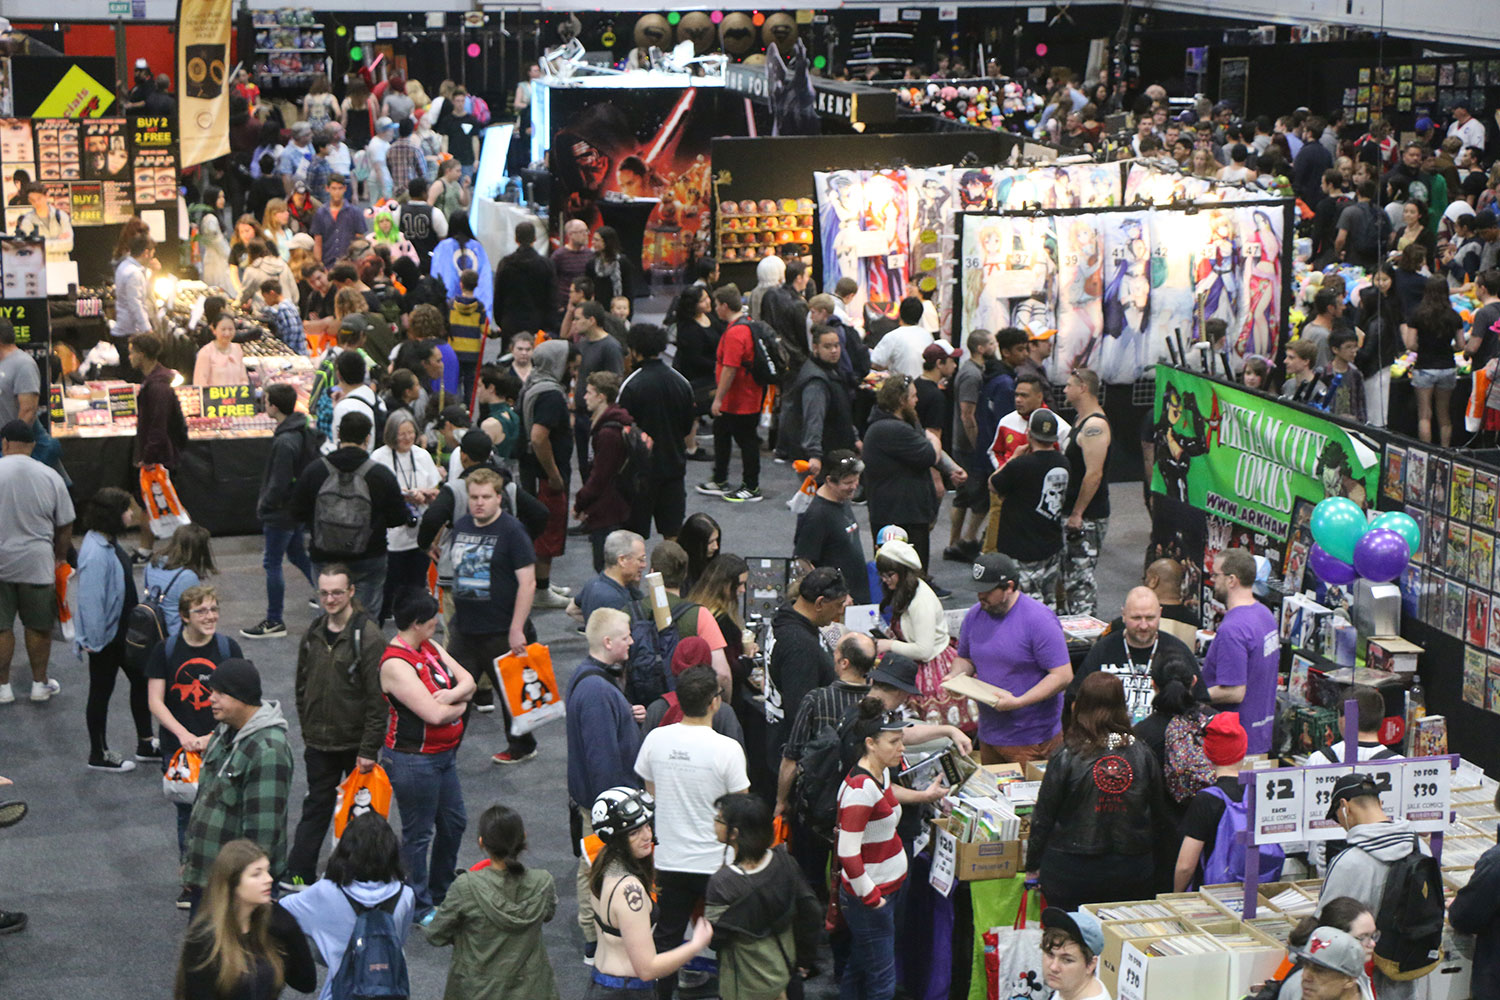 Armageddon Expo 2016 – Auckland – Oct 22 – Exhibit Hall – 1 (Photo credit: Tracey Wong)